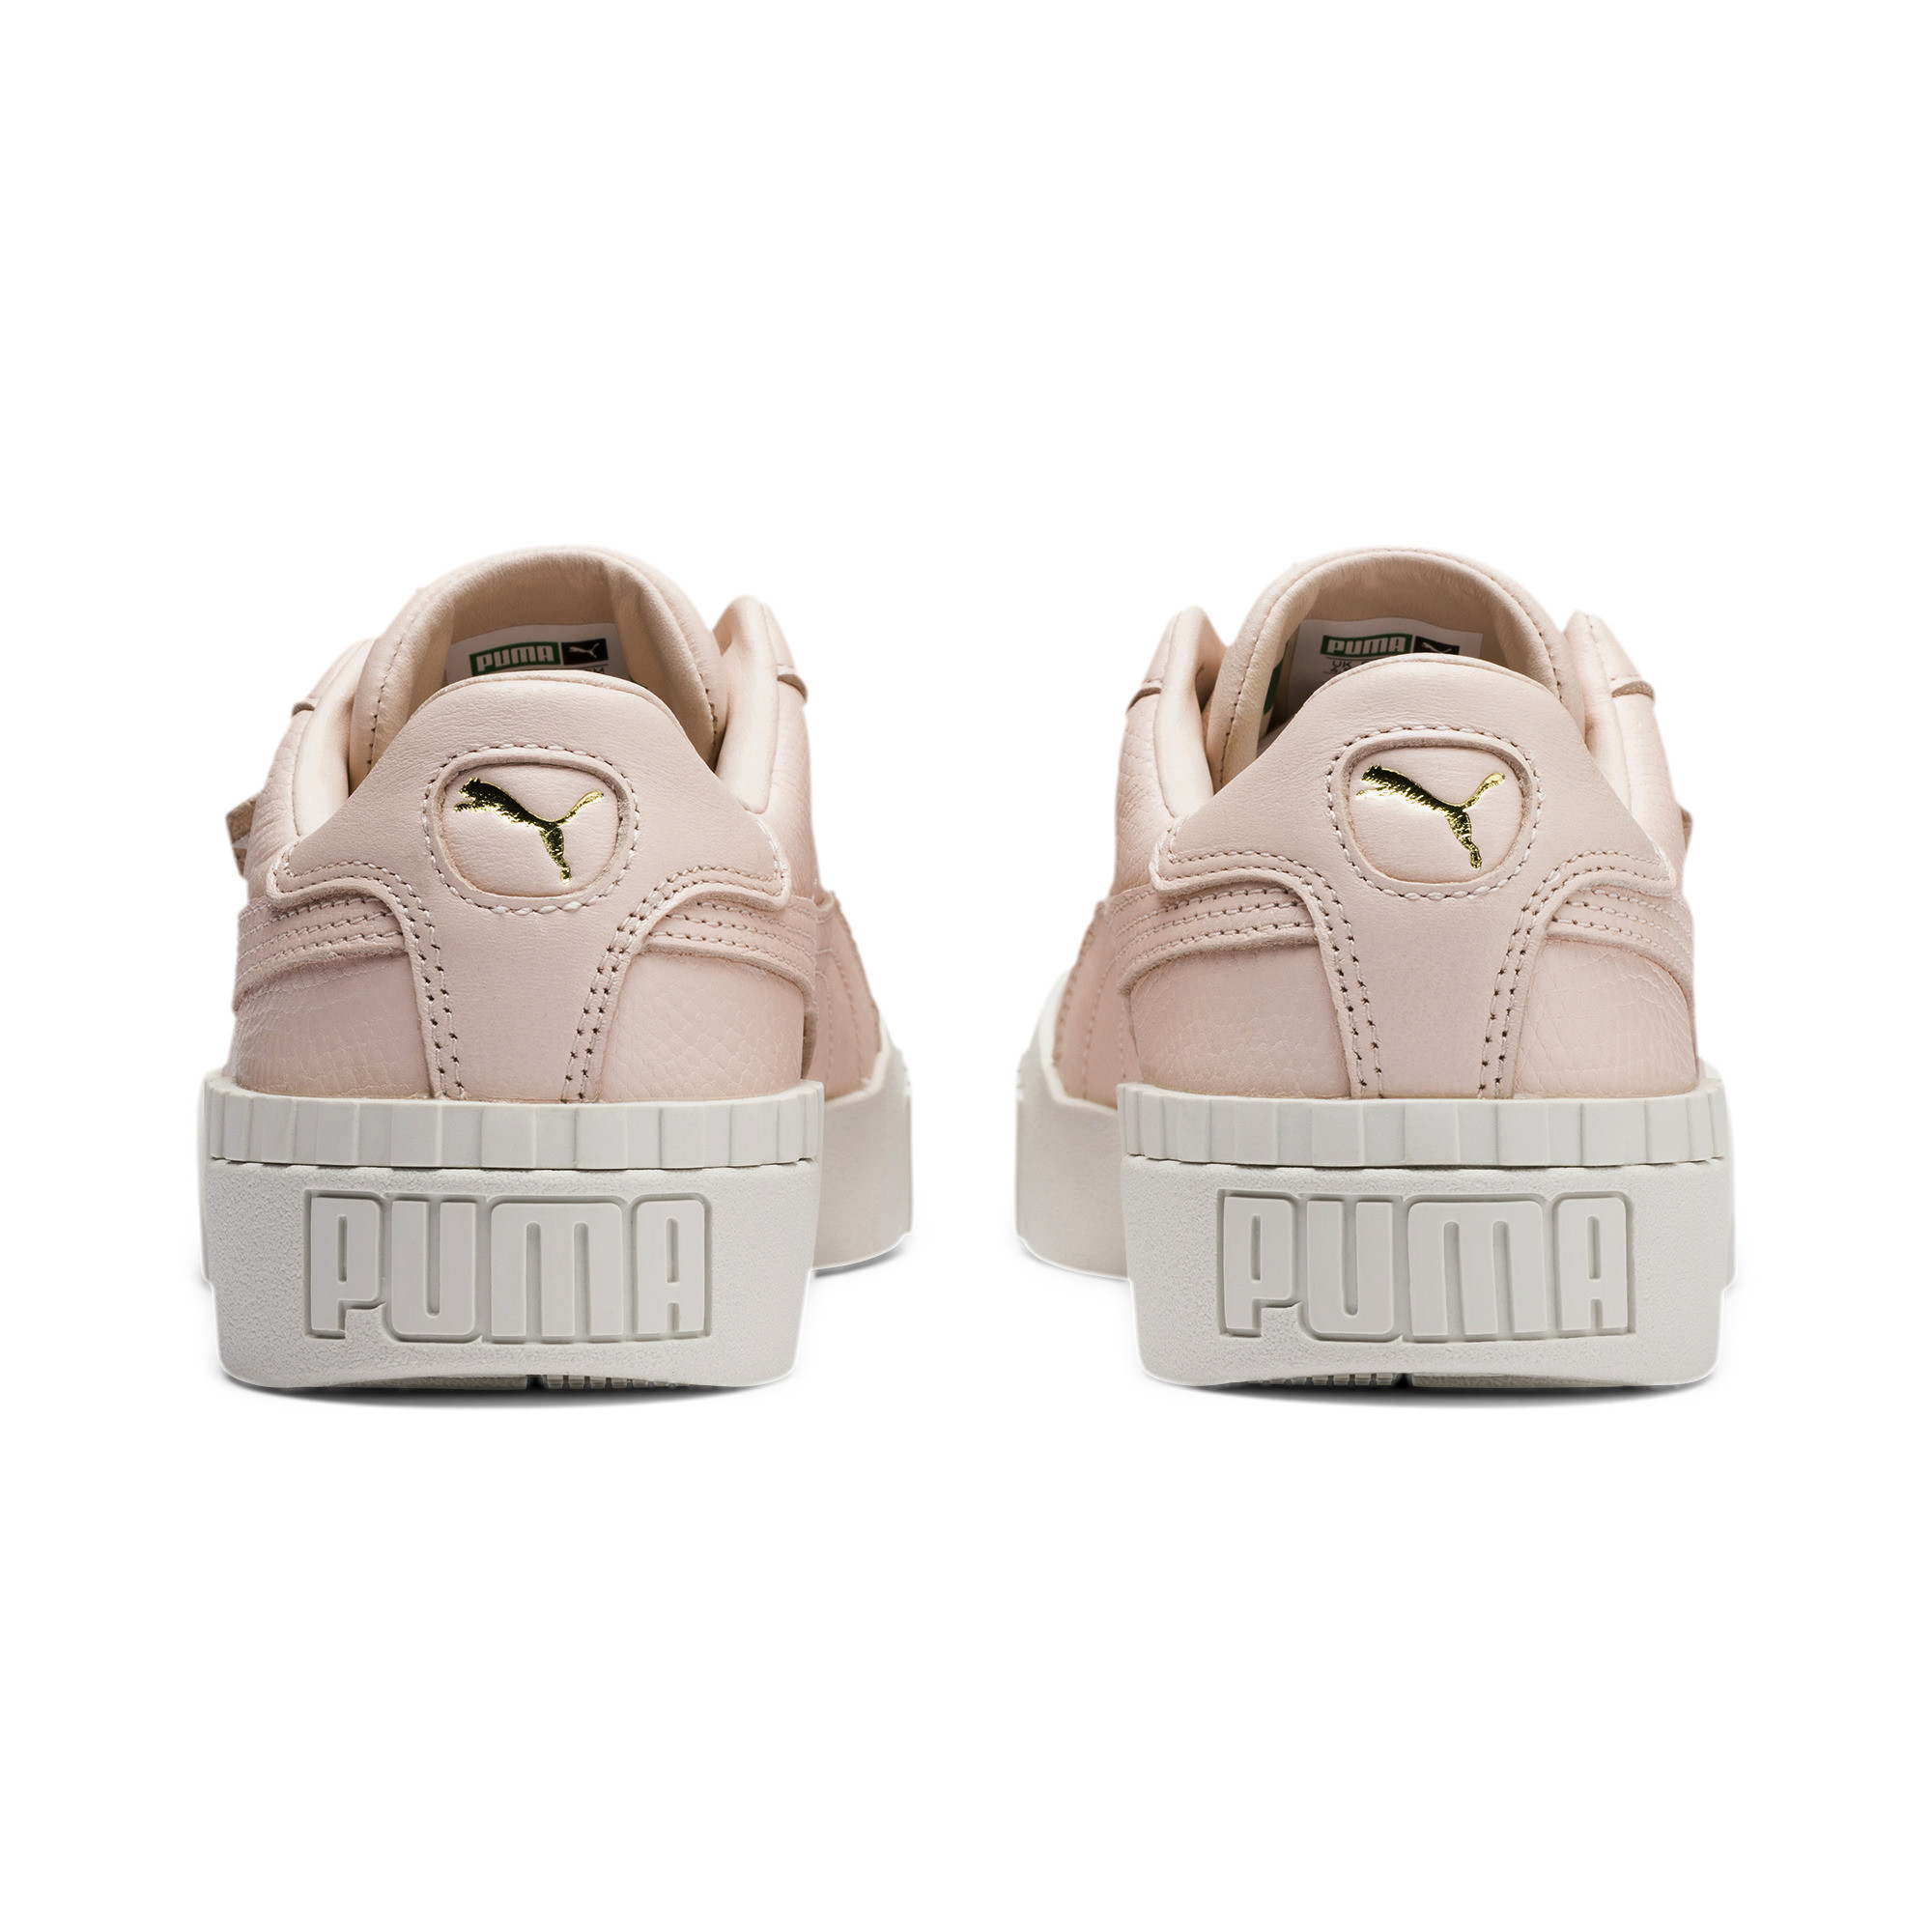 PUMA-Cali-Emboss-Women-039-s-Sneakers-Women-Shoe-Evolution thumbnail 10